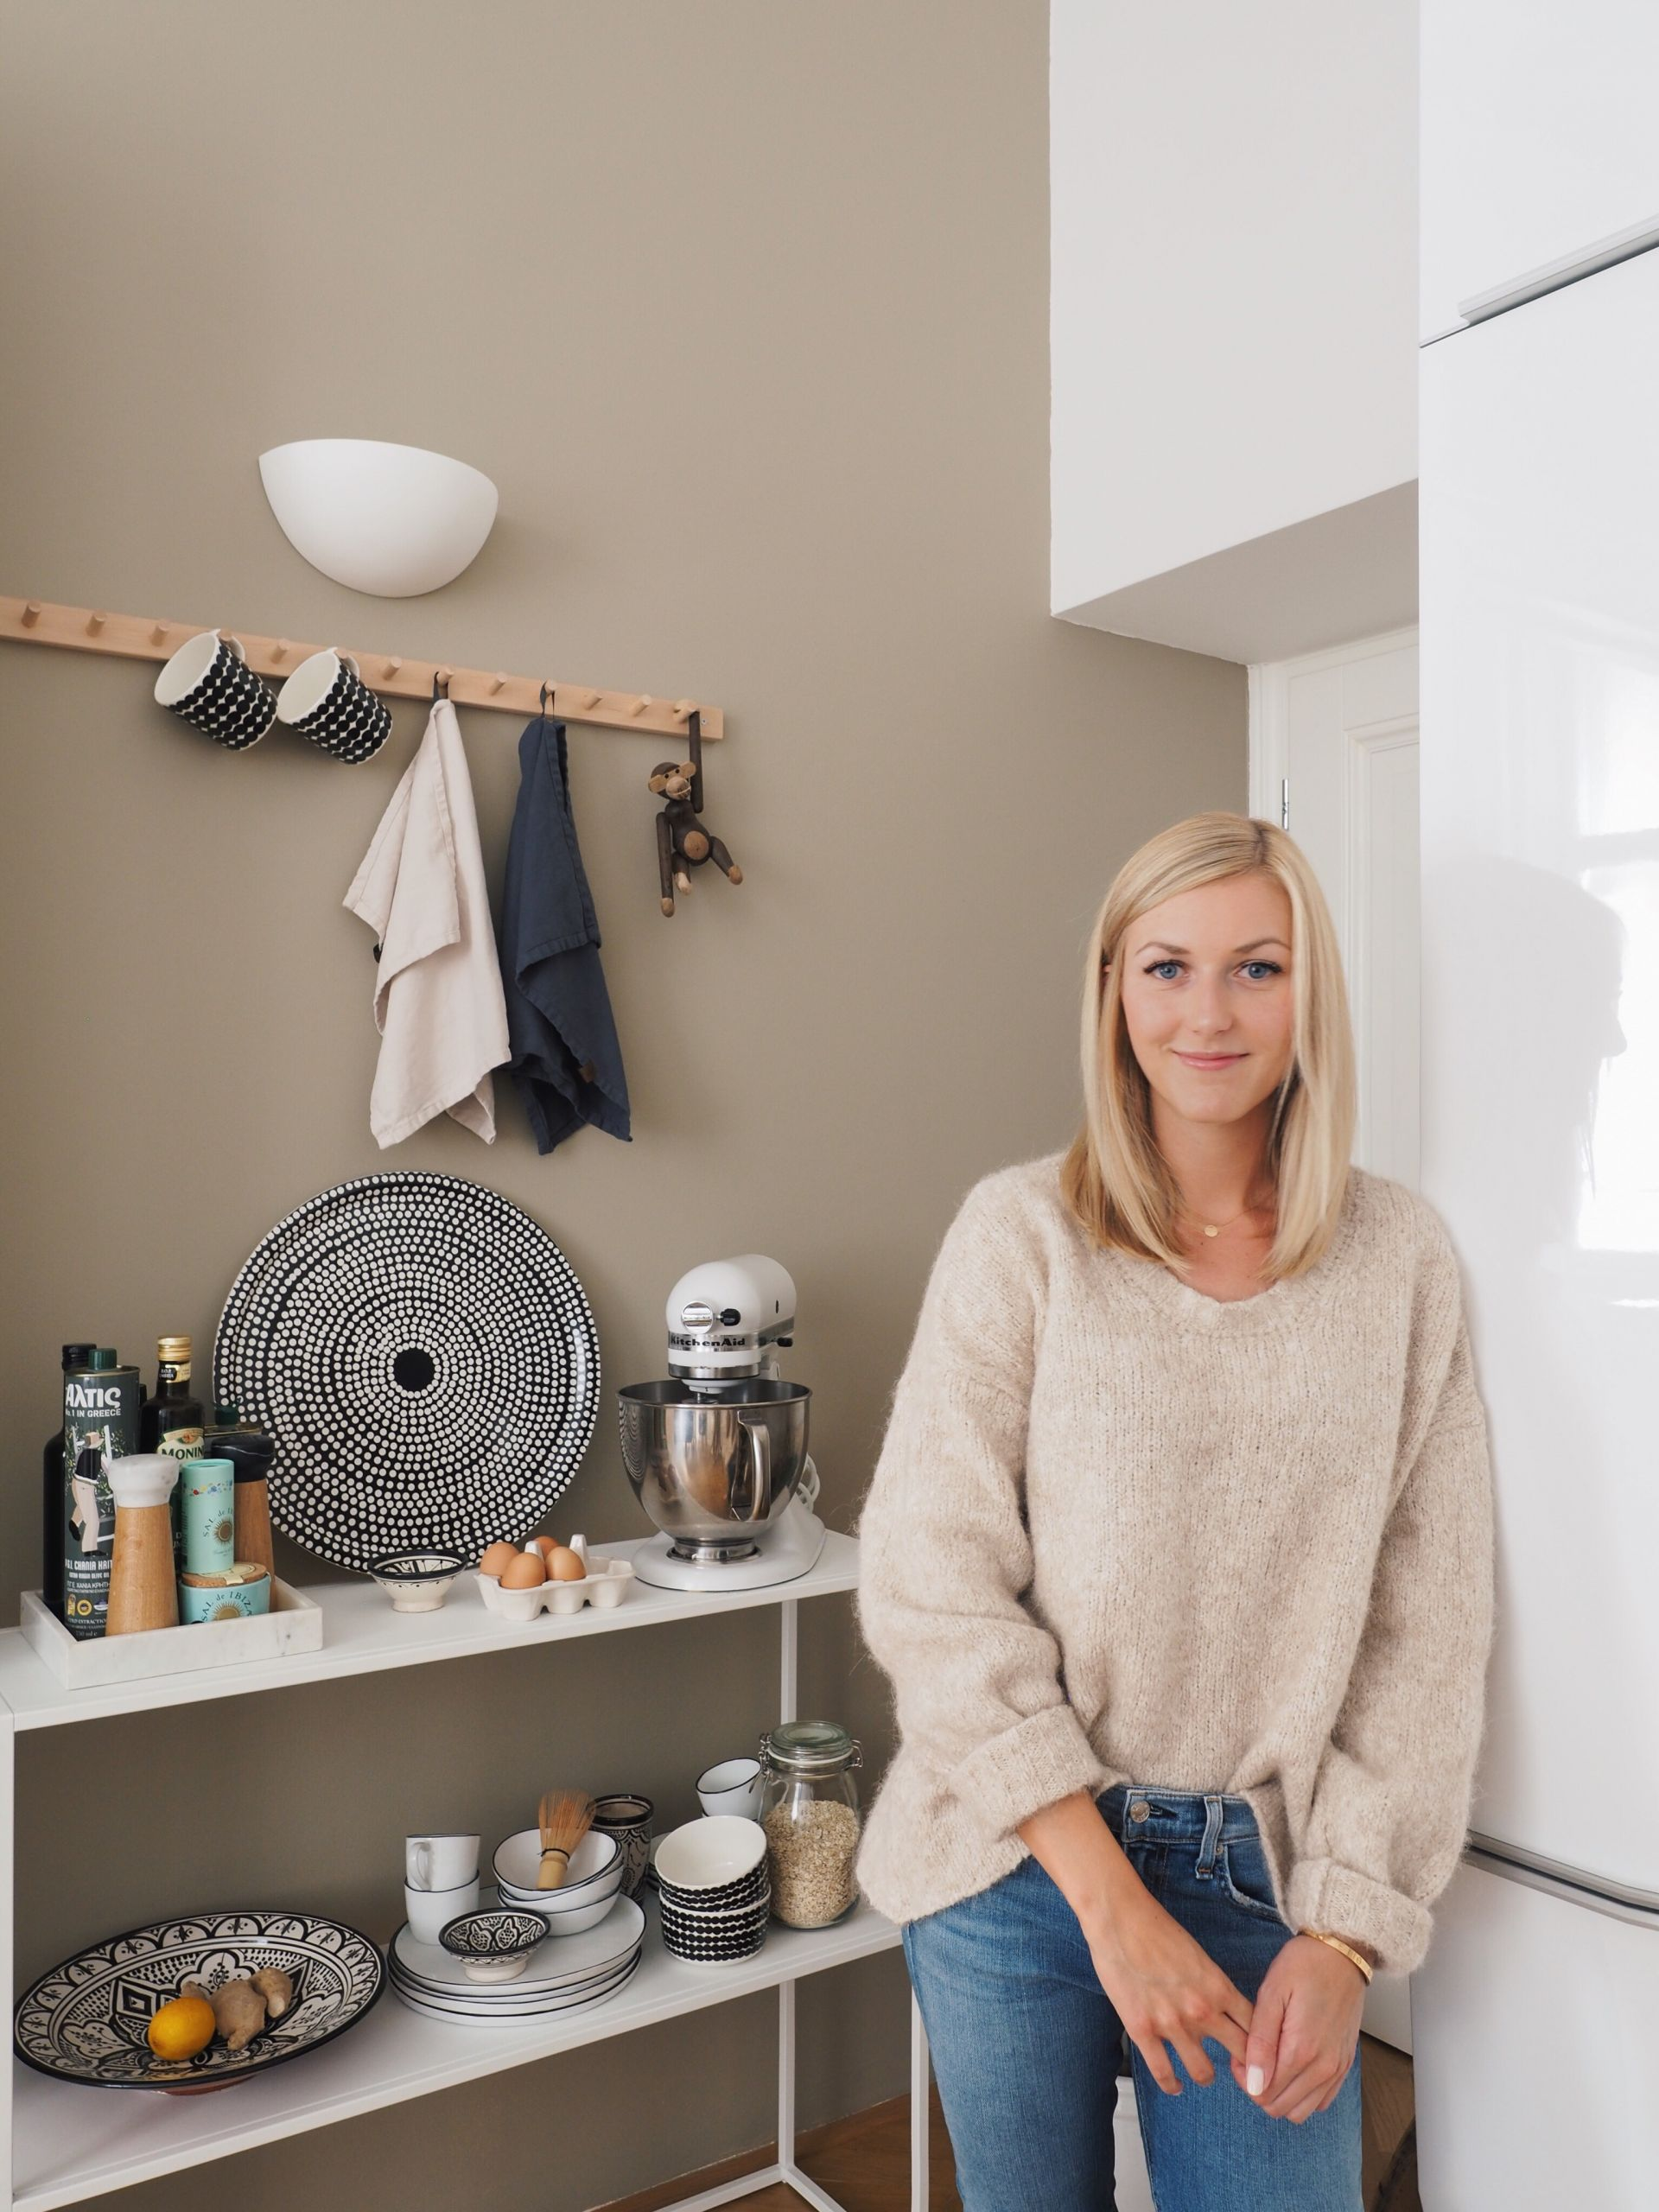 Home Story: Svenja Traumzuhause | The Daily Dose